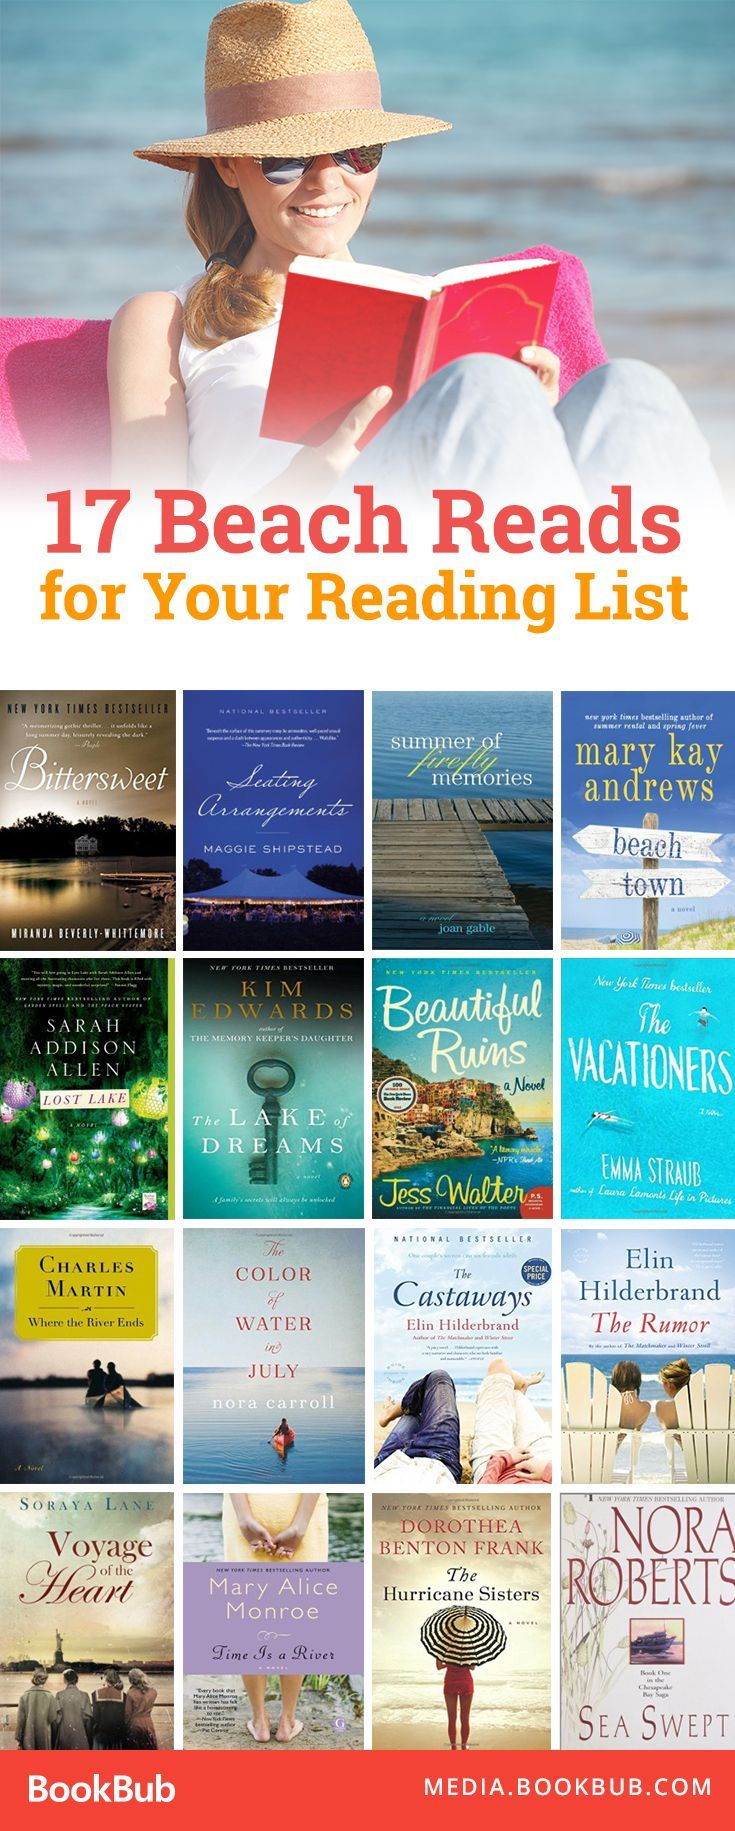 17 beach reads to add to your summer reading list! These are perfect choices for summer 2017.